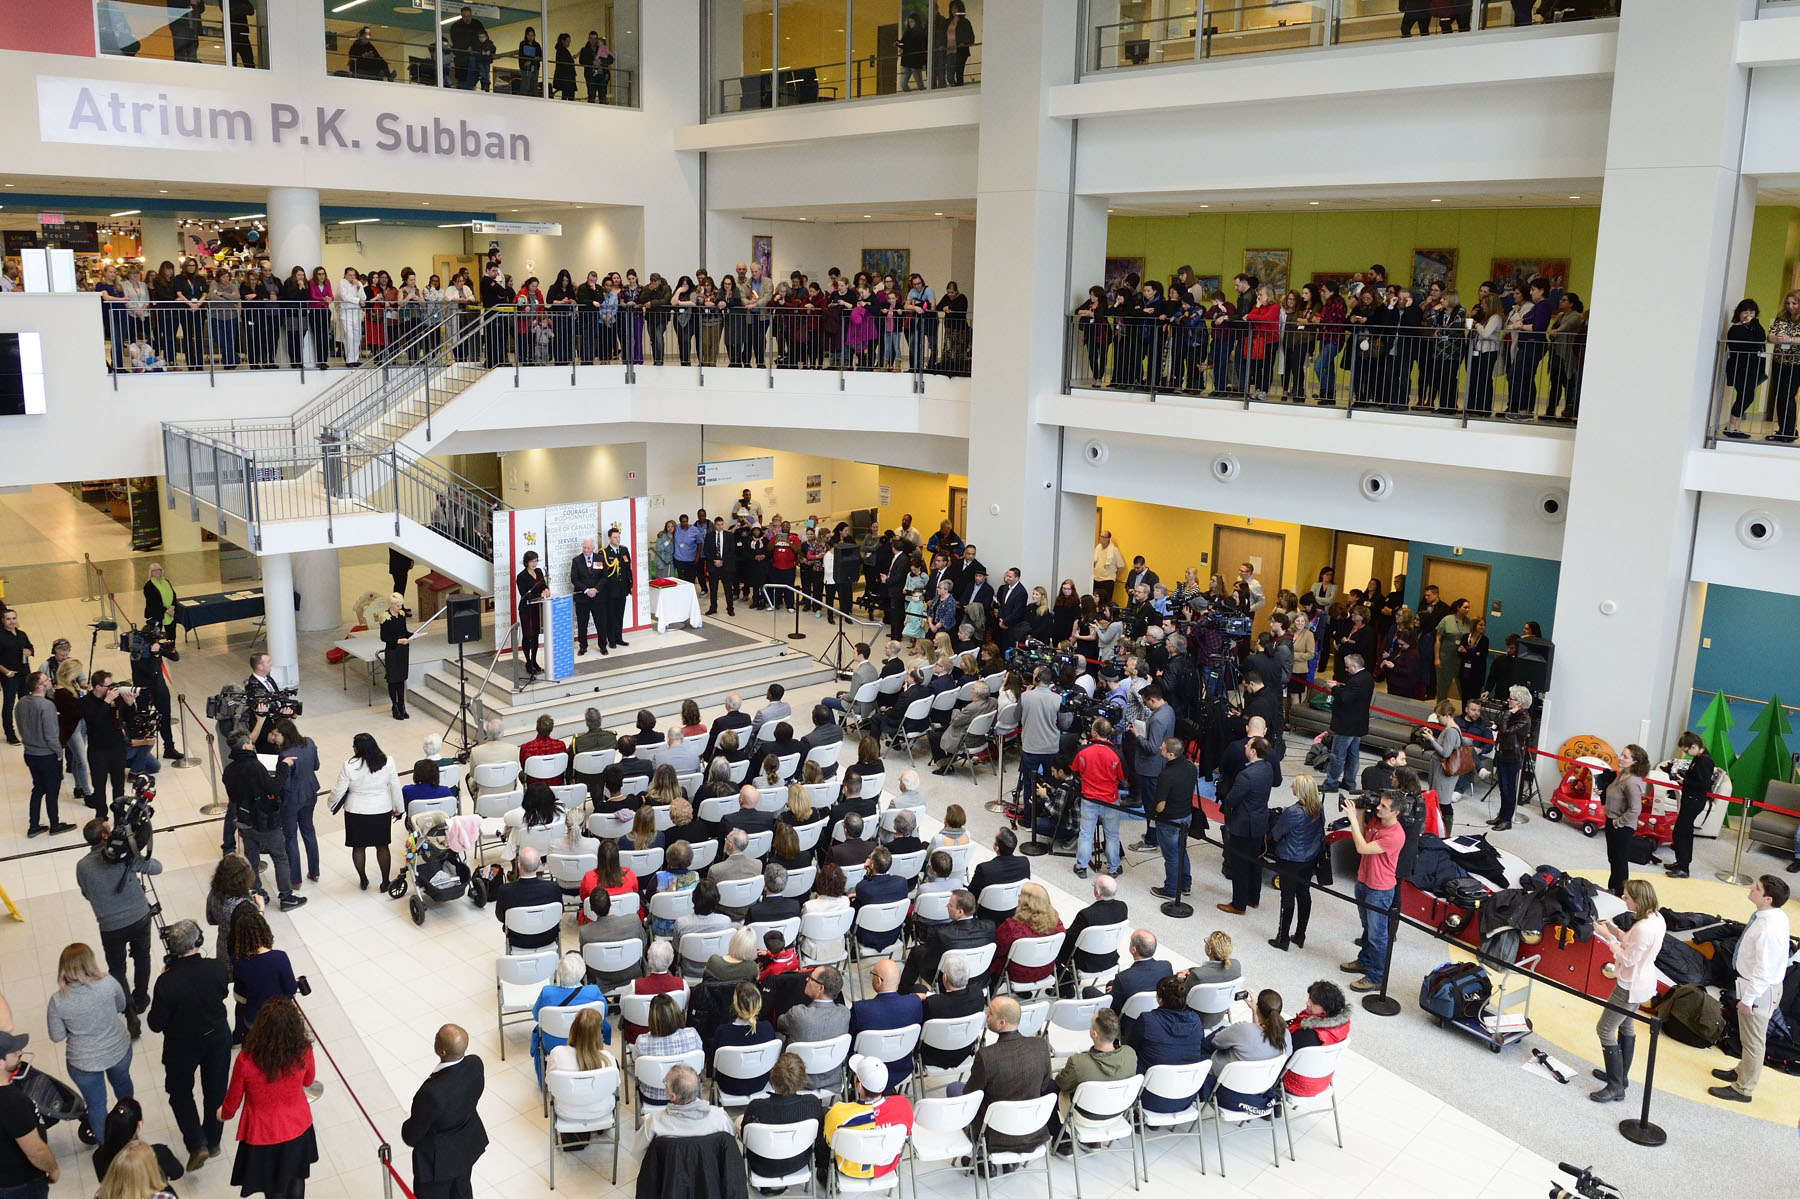 The ceremony took place in the P.K. Subban Atrium of the Montreal Children's Hospital on March 1, 2017.